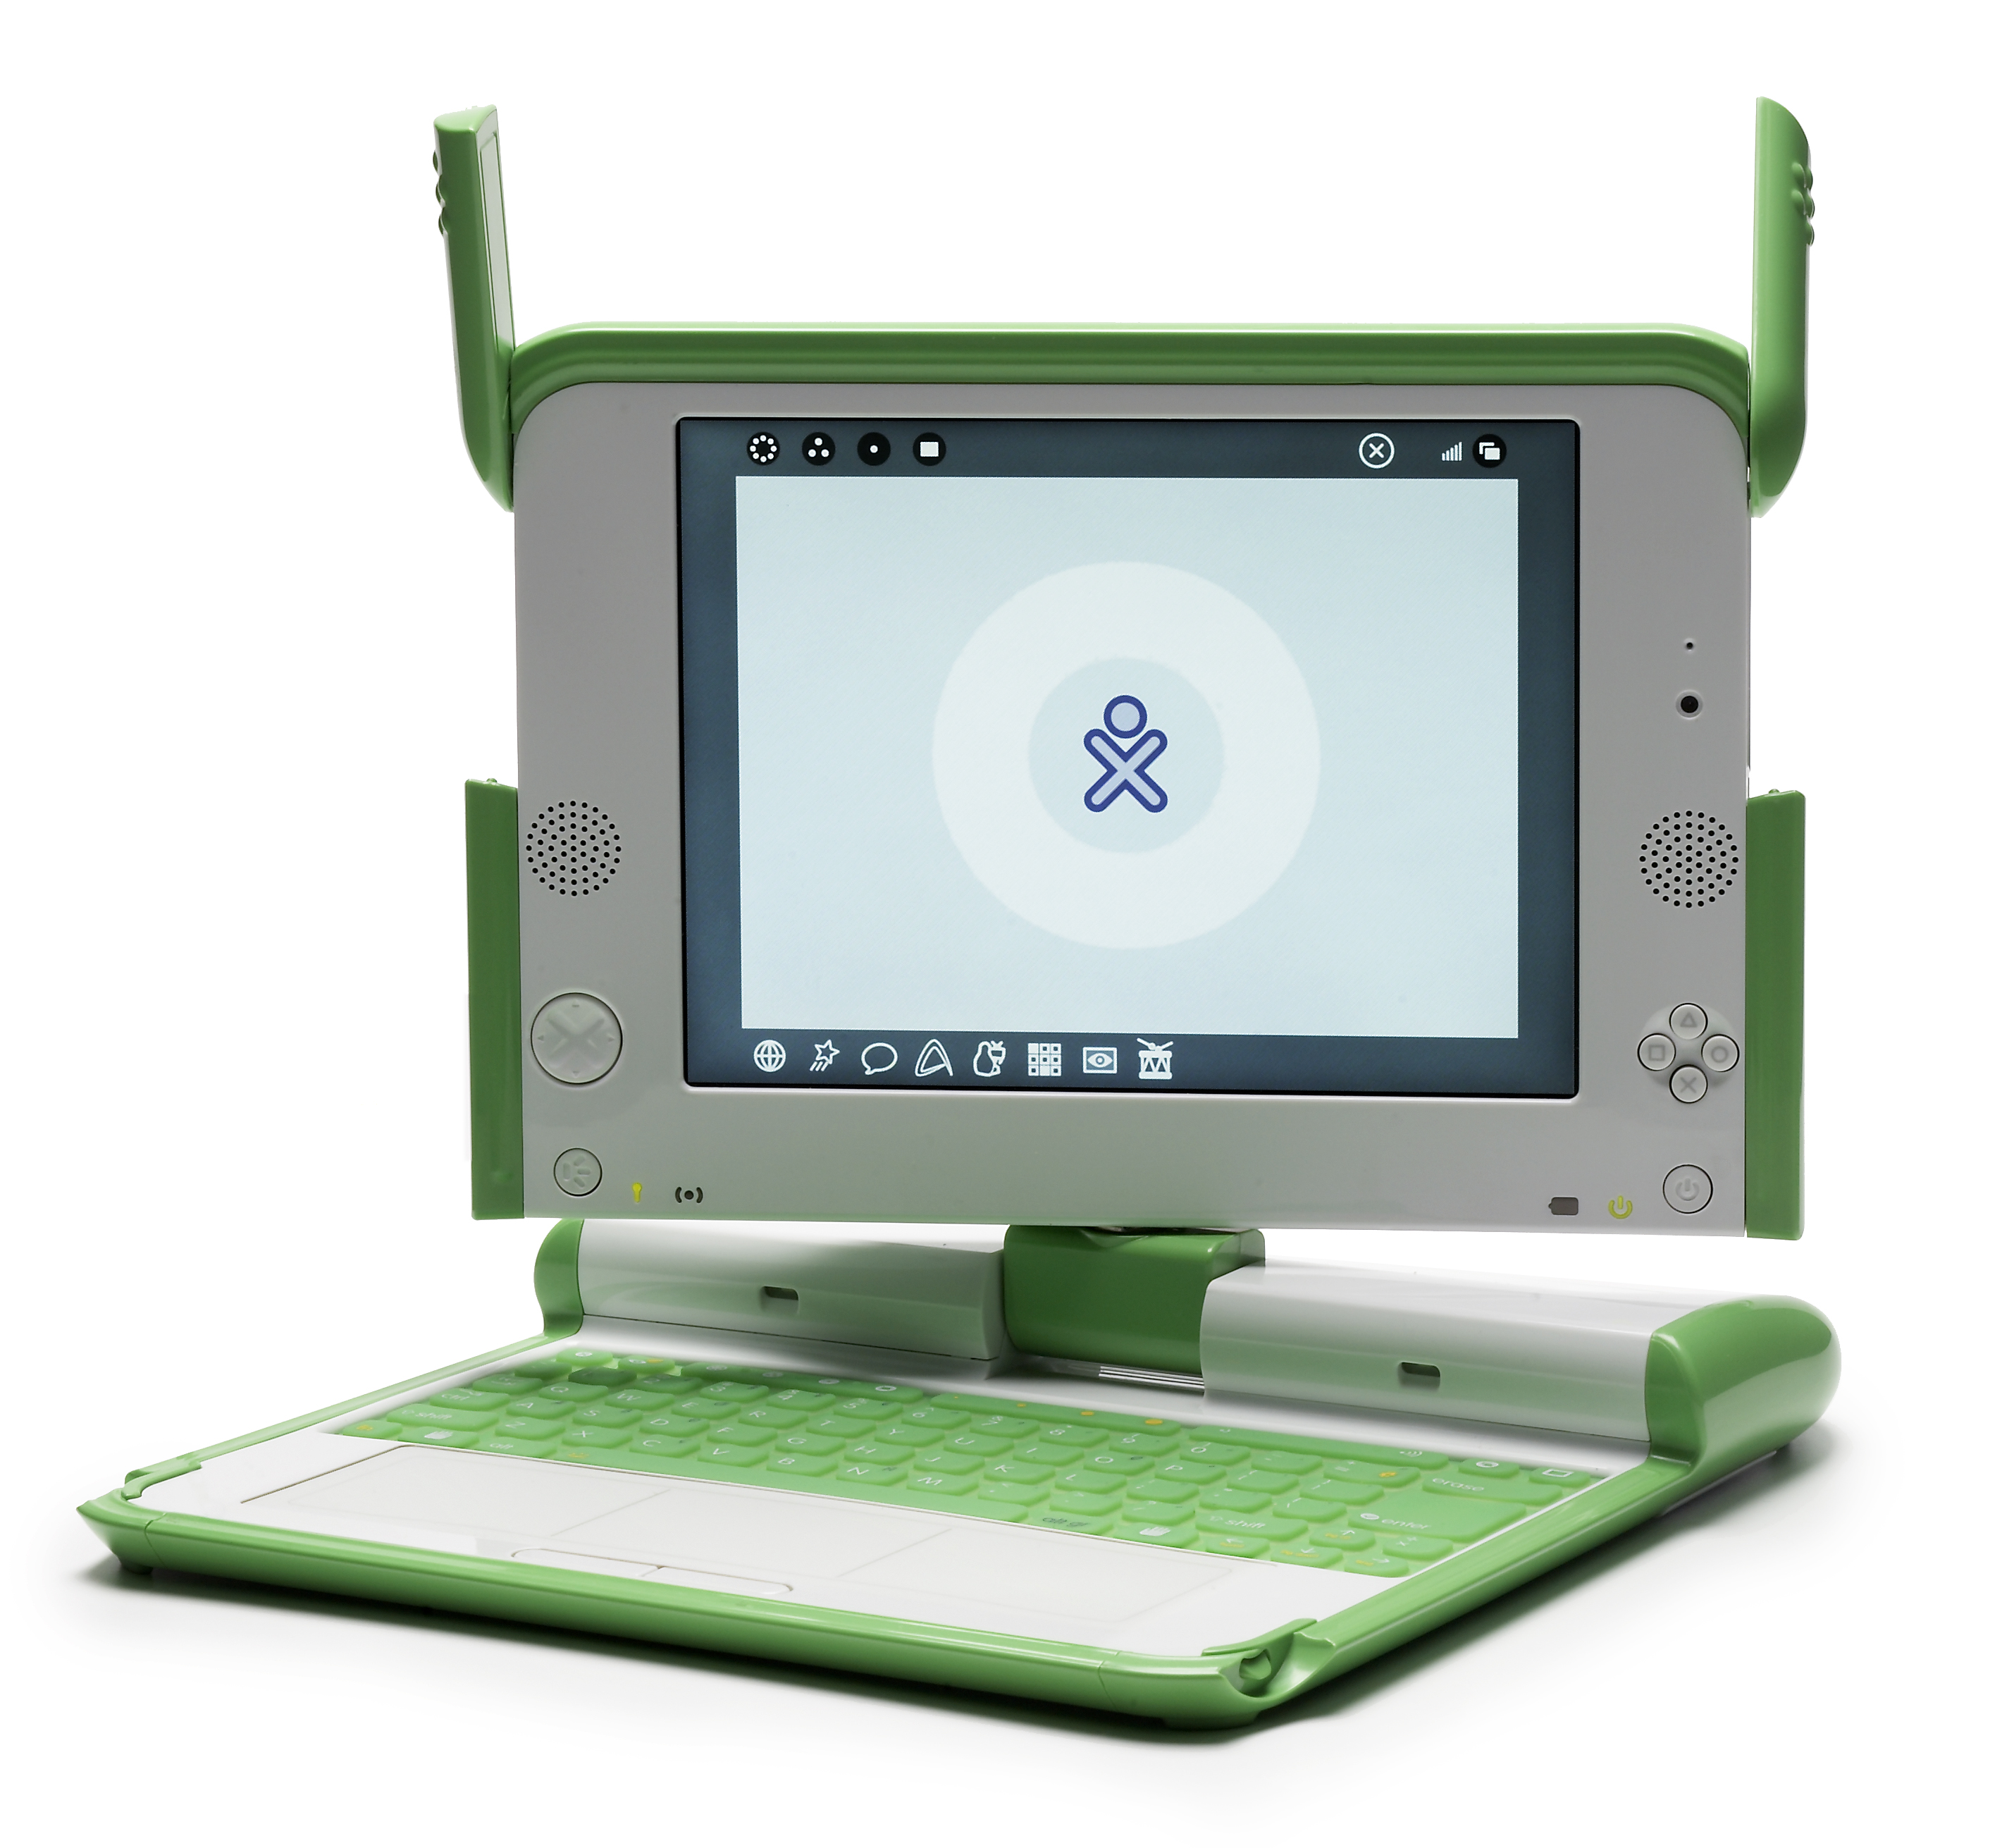 XO laptop used by the One Laptop Per Child (OLPC) program